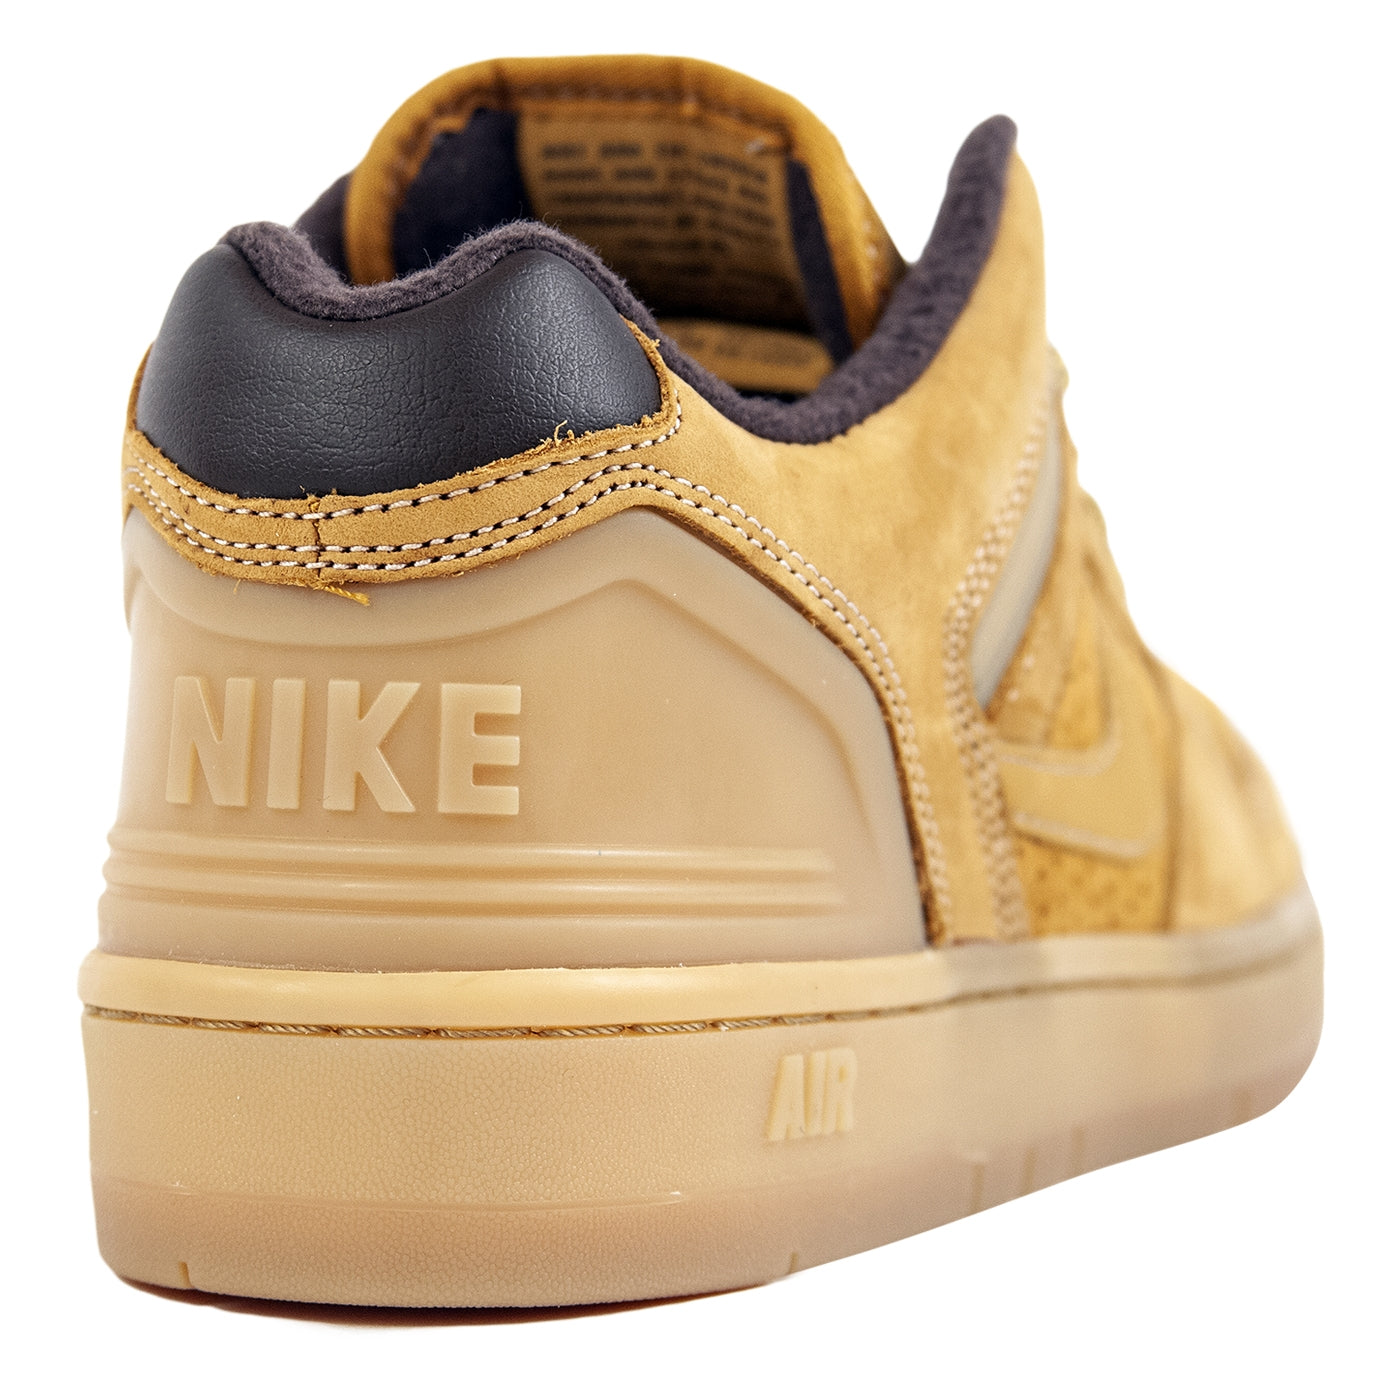 5a718cb87b4c6 Nike SB Air Force II Low Premium Shoe - Bronze   Bronze - Baroque Brown.  Size Charts